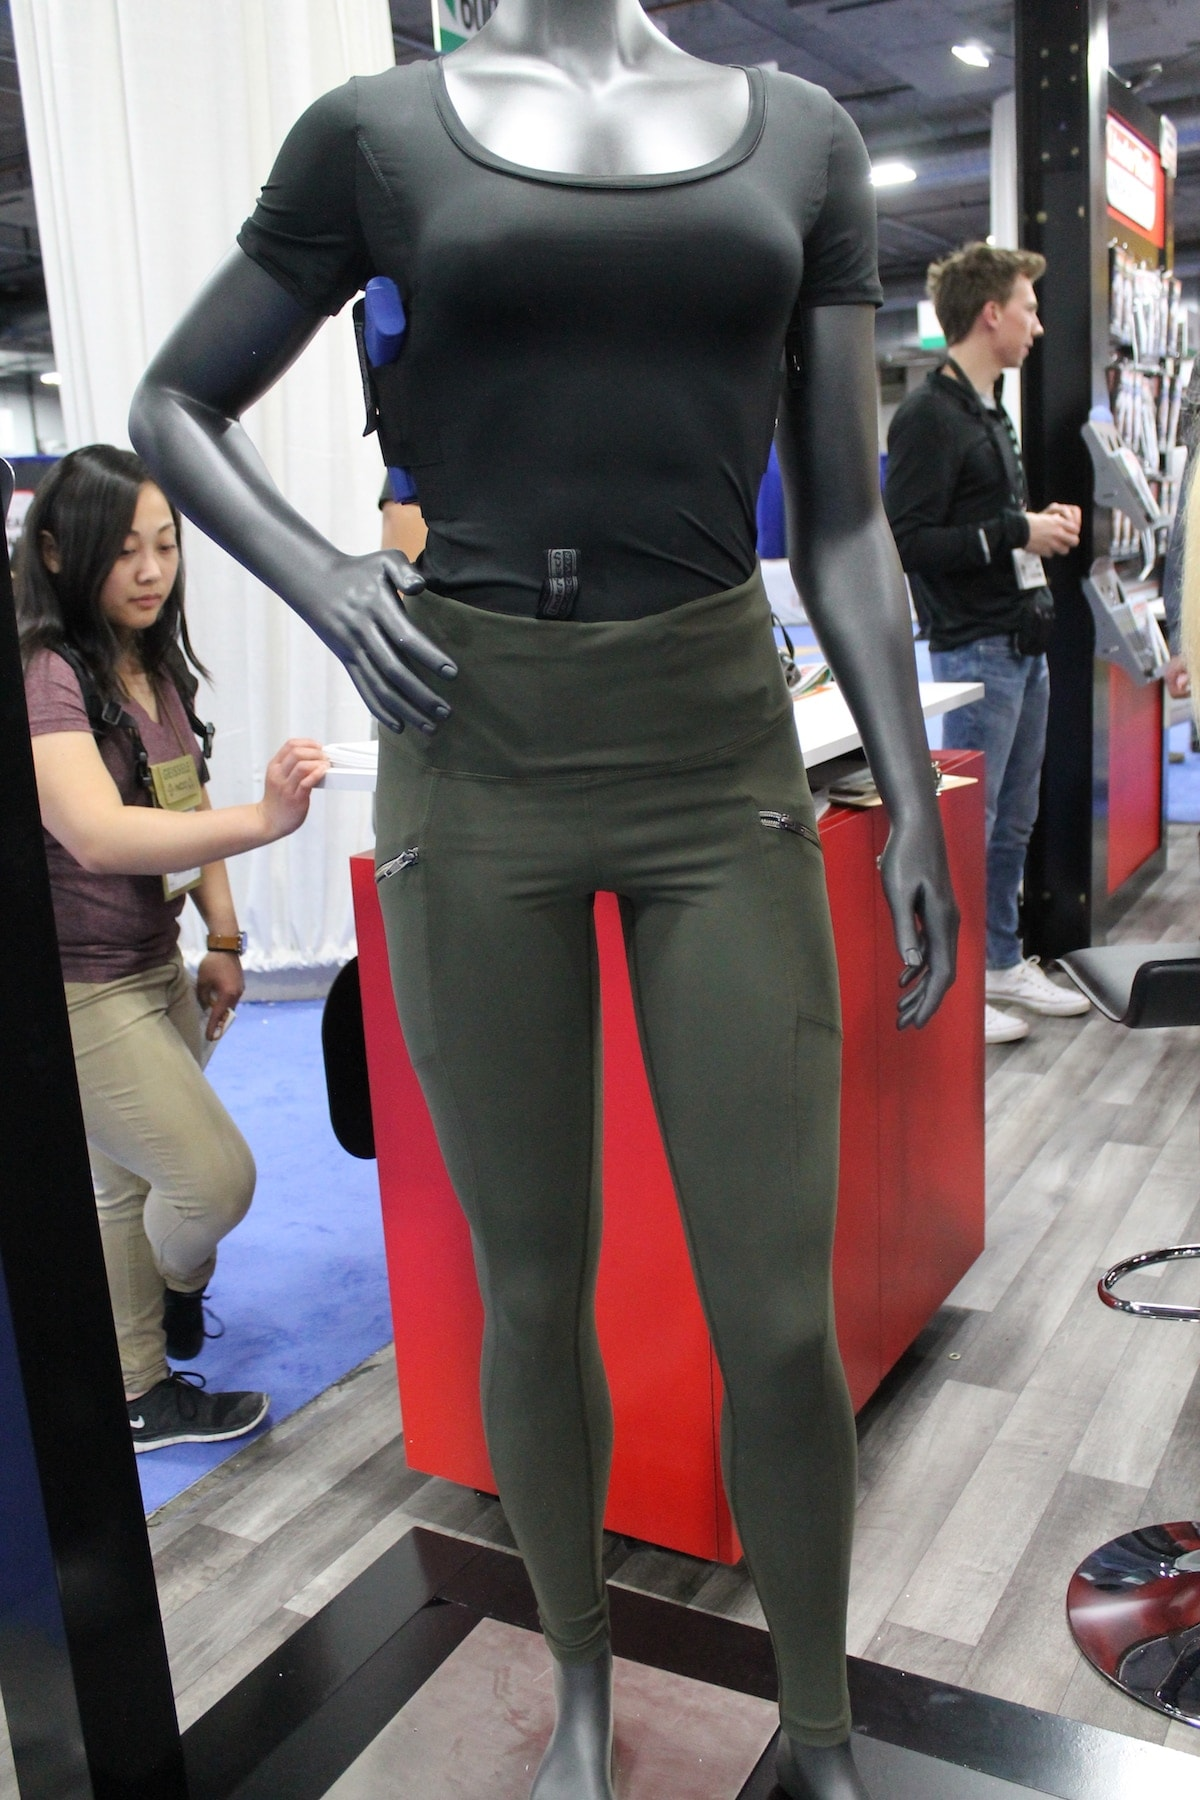 UnderTech UnderCover returned this year with another set of Concealed Carry leggings. These come in multiple colors, are full length and feature zipper pockets. (Photo: Jacki Billings)